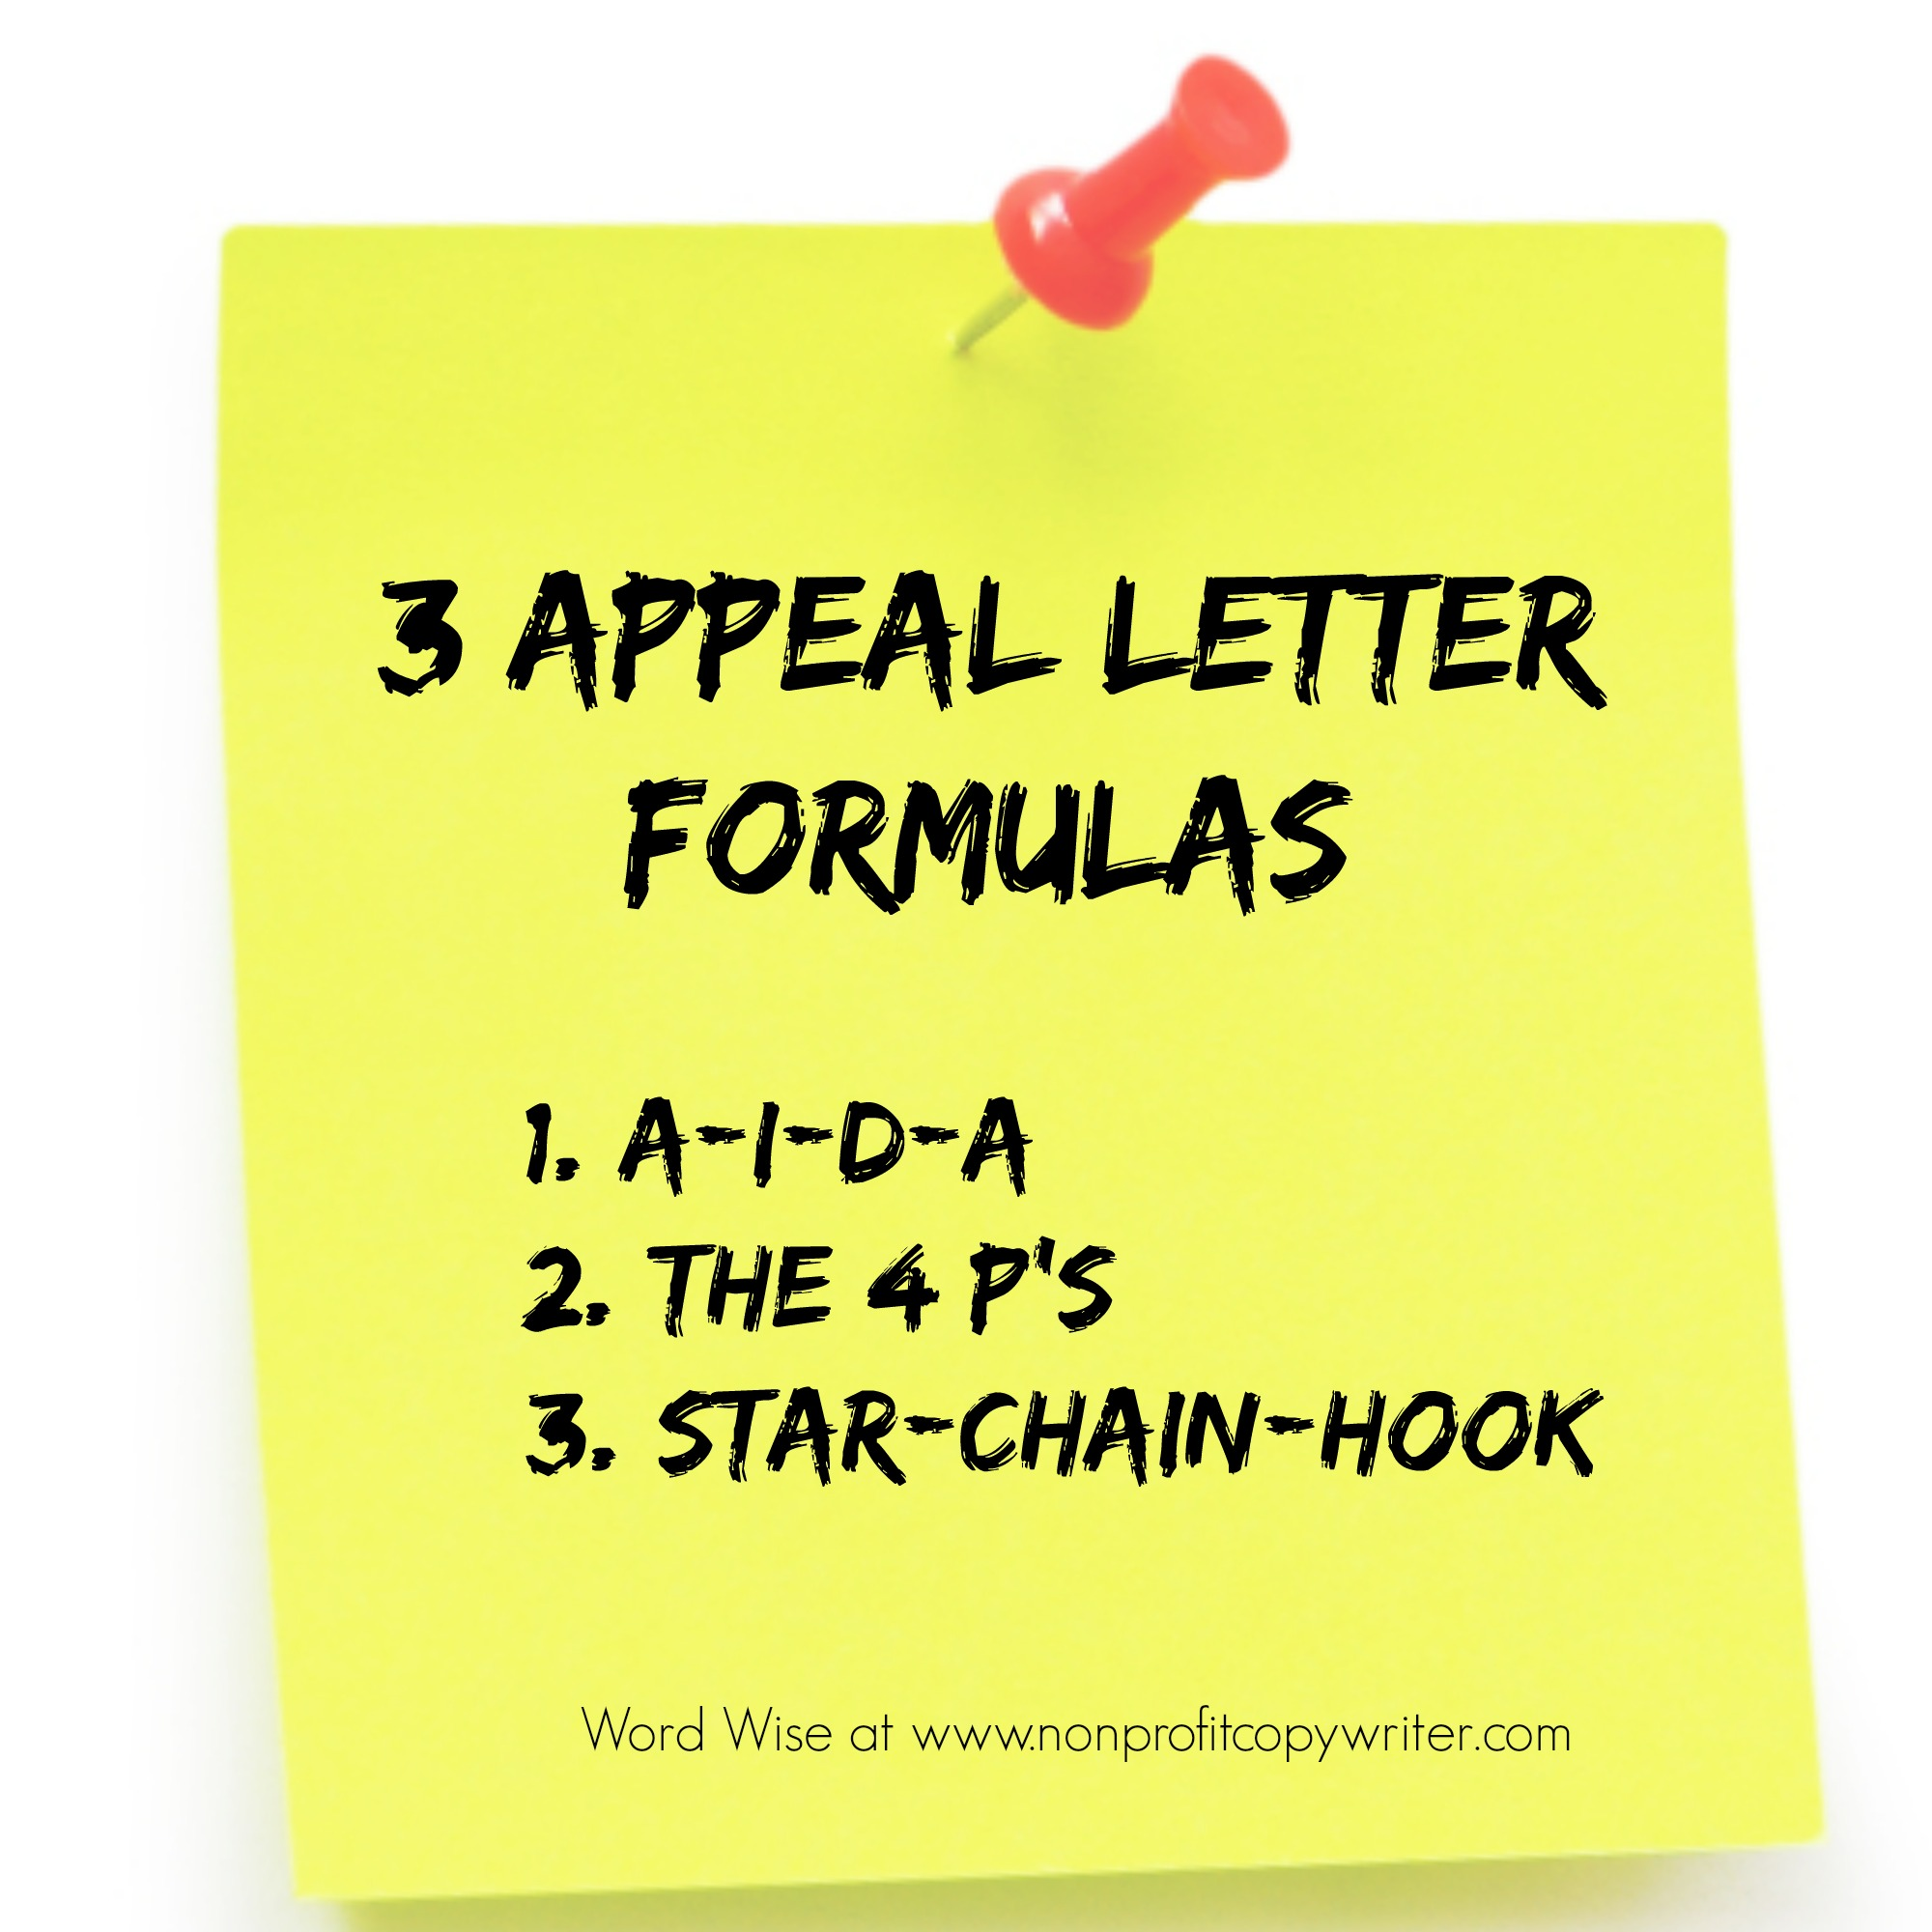 3 appeal letter copywriting formulas with Word Wise at Nonprofit Copywriter